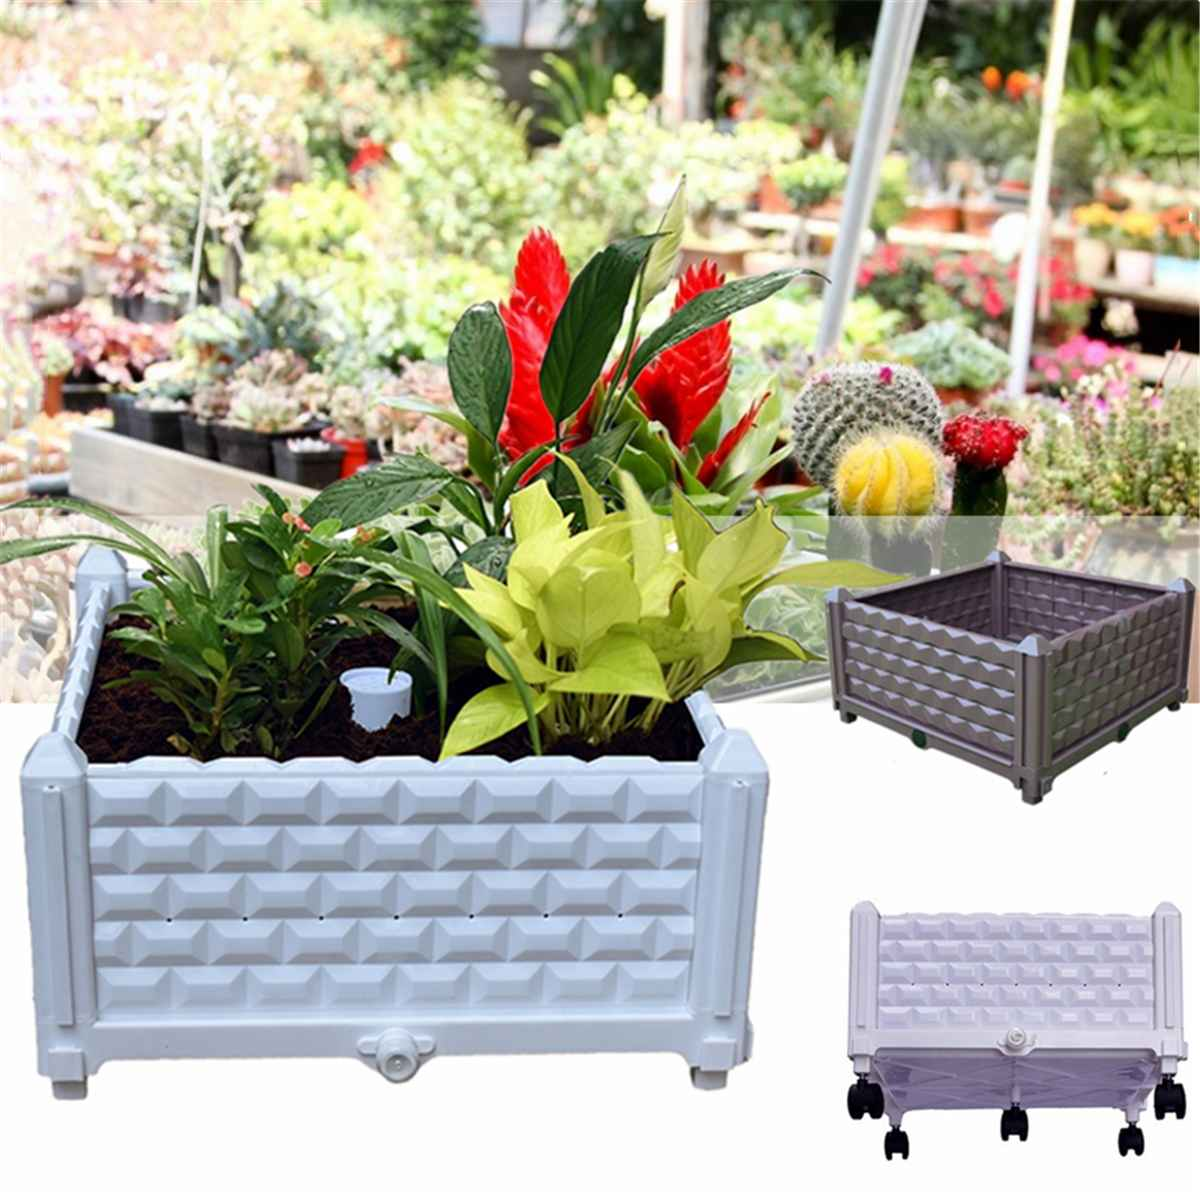 Planting Container Grow Bags Breathable Durable Plastic Planter Pot For Plants Nursery Pot Fabric Raised Garden Bed With Wheels|Nursery Pots| |  - title=